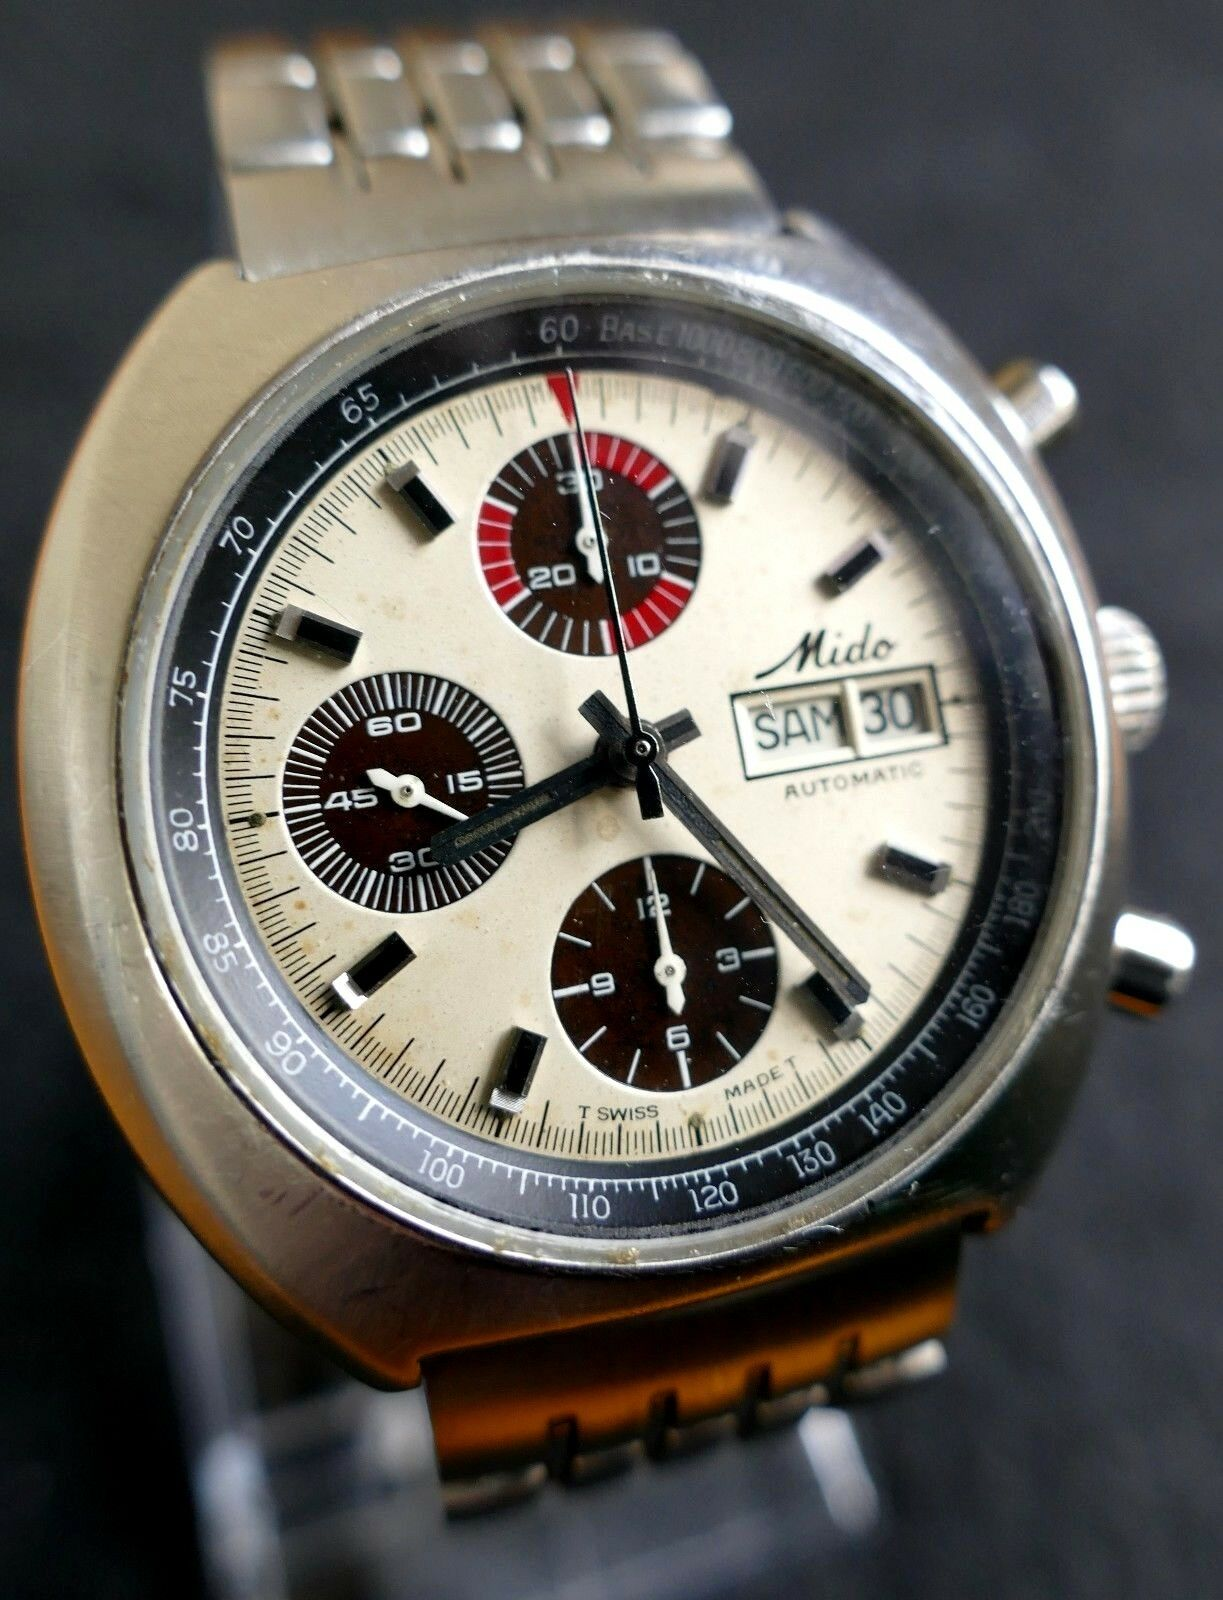 Vintage Mido Automatic Chronograph Watch Uhr Reloj Montre Orologio 1 of 7  See More